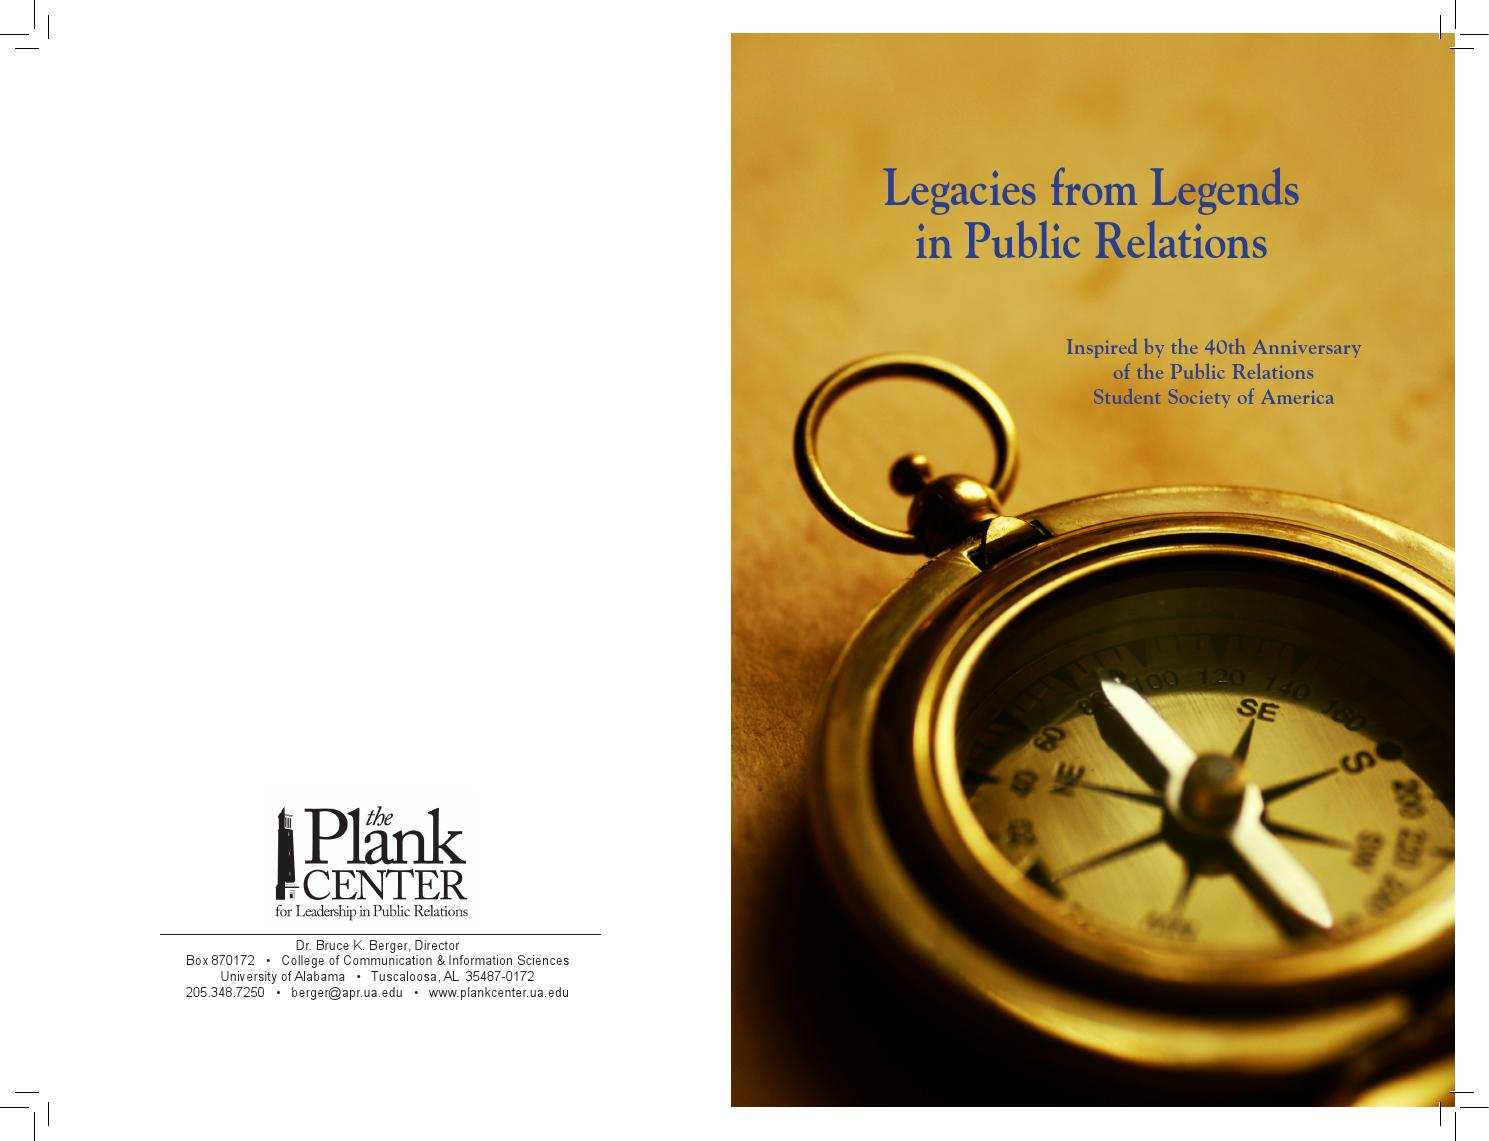 Legacy from Legends in Public Relations by Plank Center for